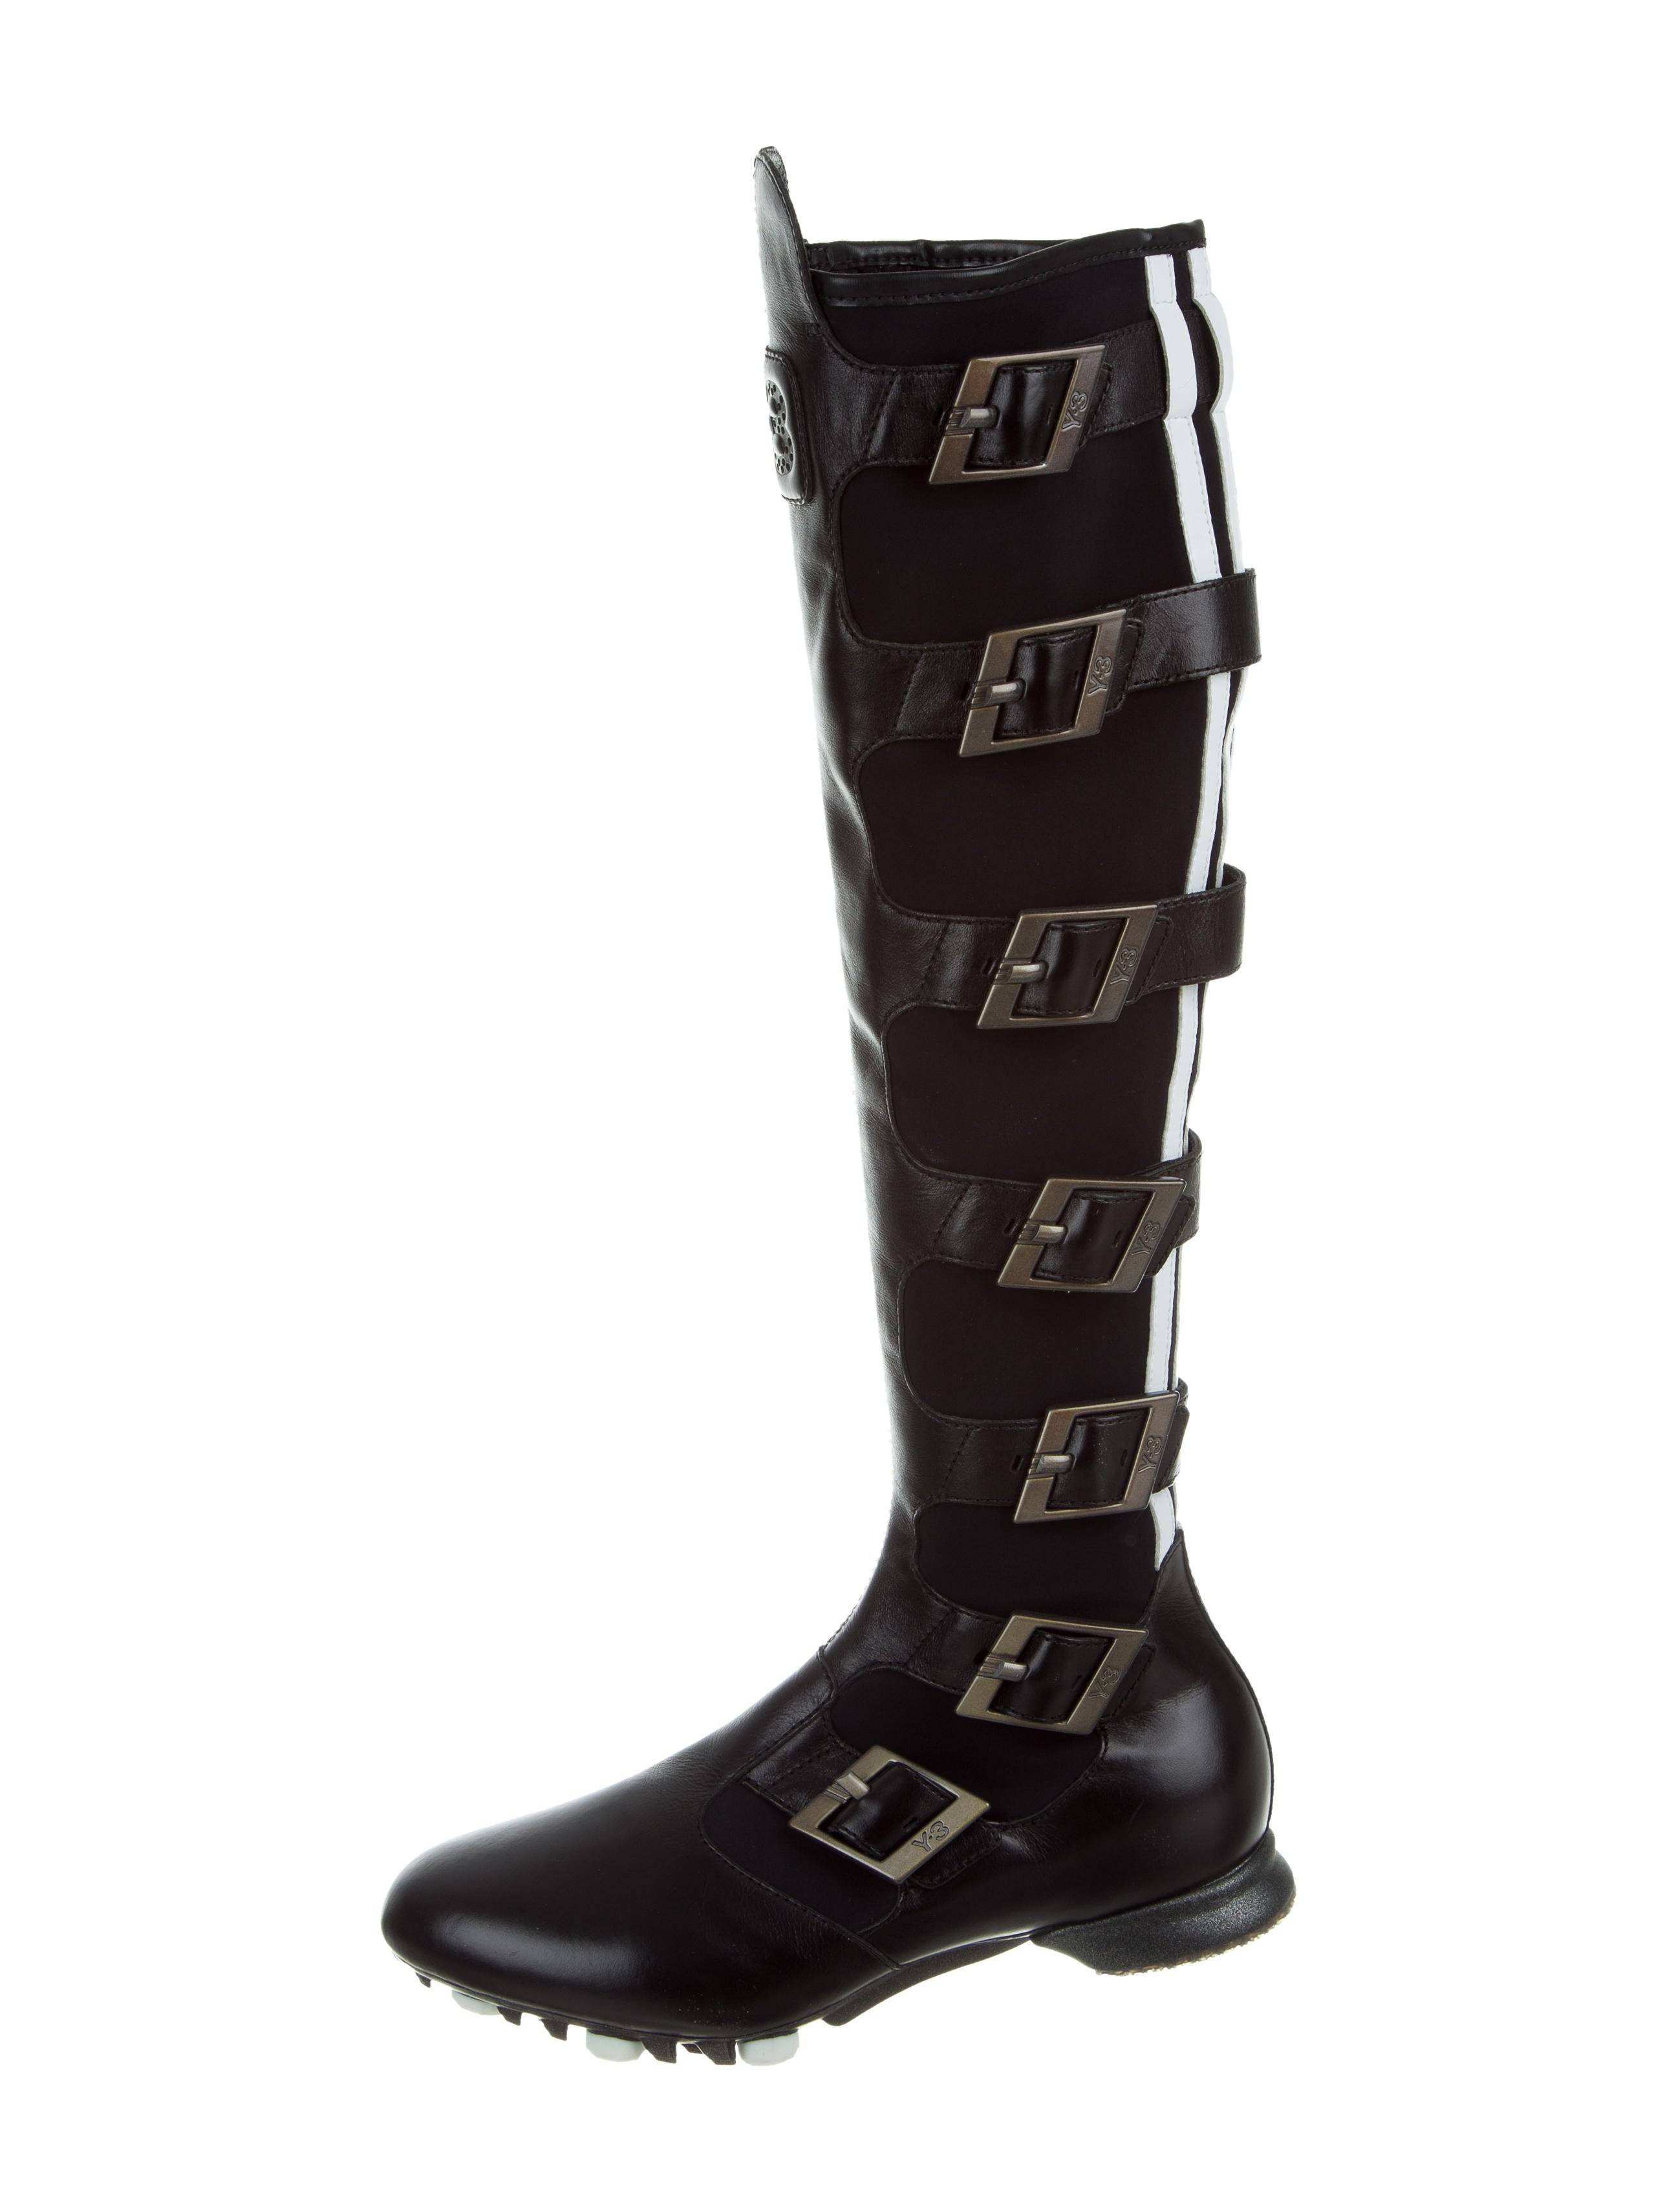 Y3 x Adidas Buckle-Accented Knee-High